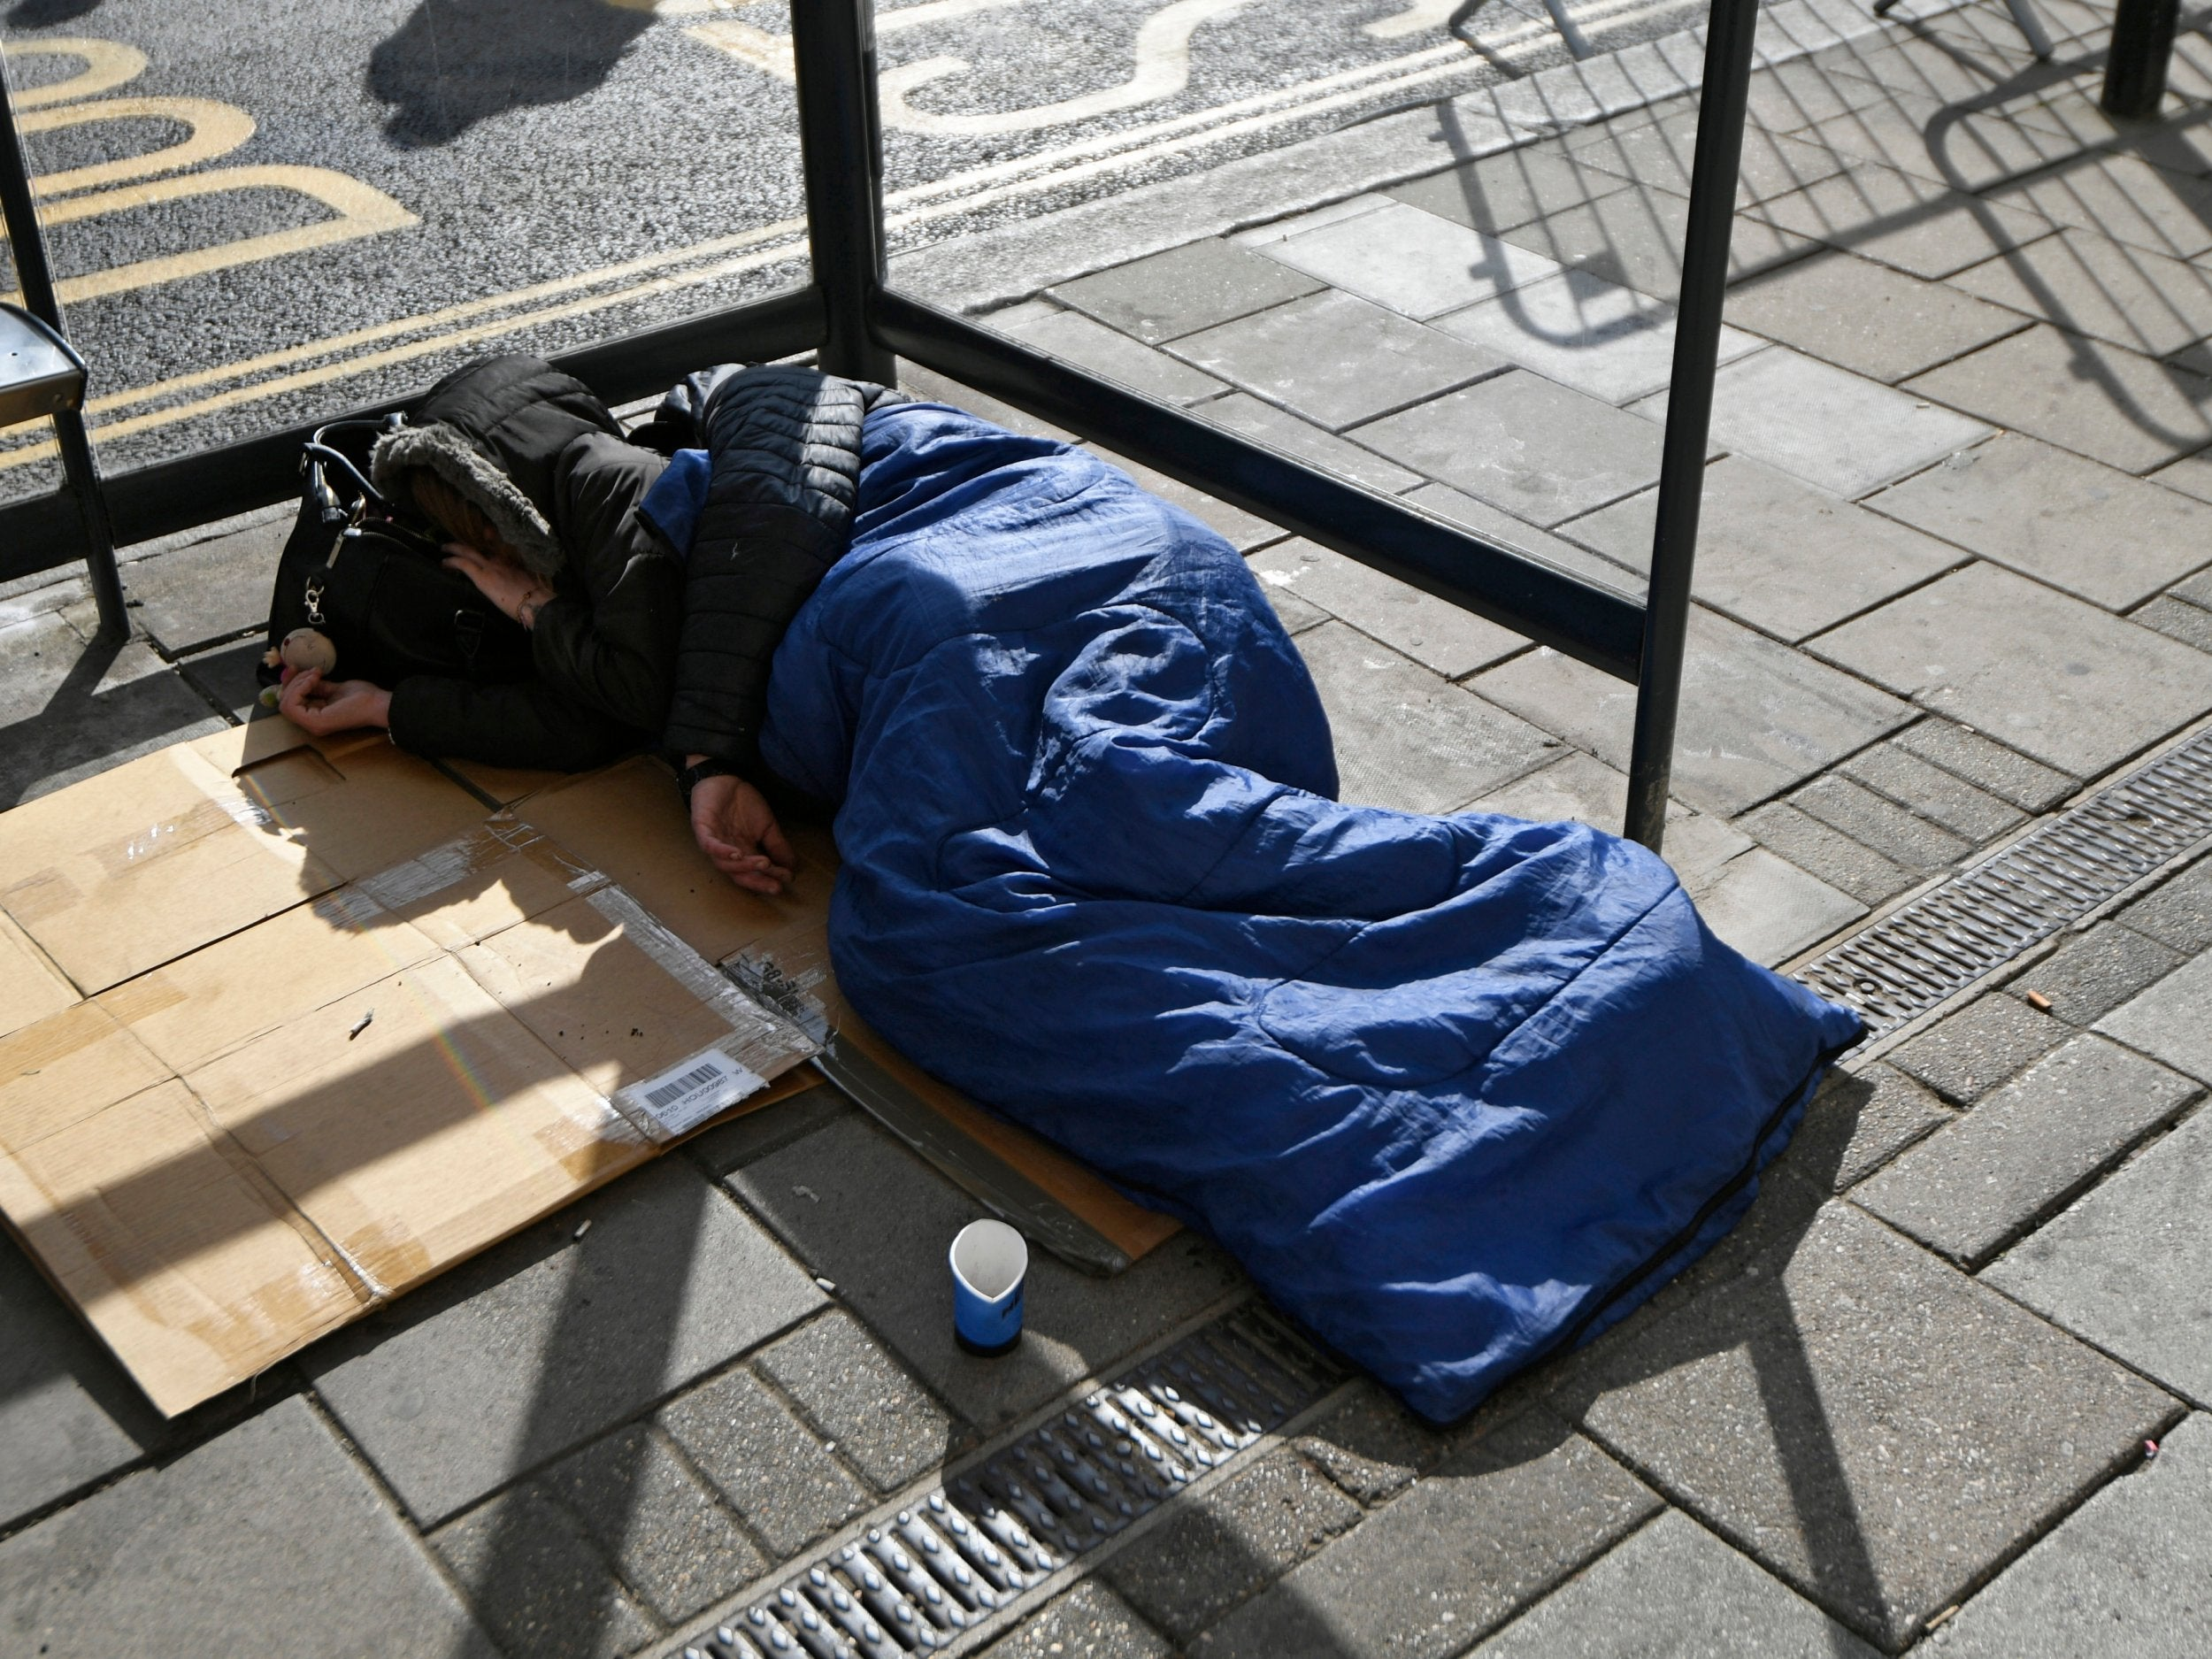 Homeless person Synonyms Homeless person Antonyms